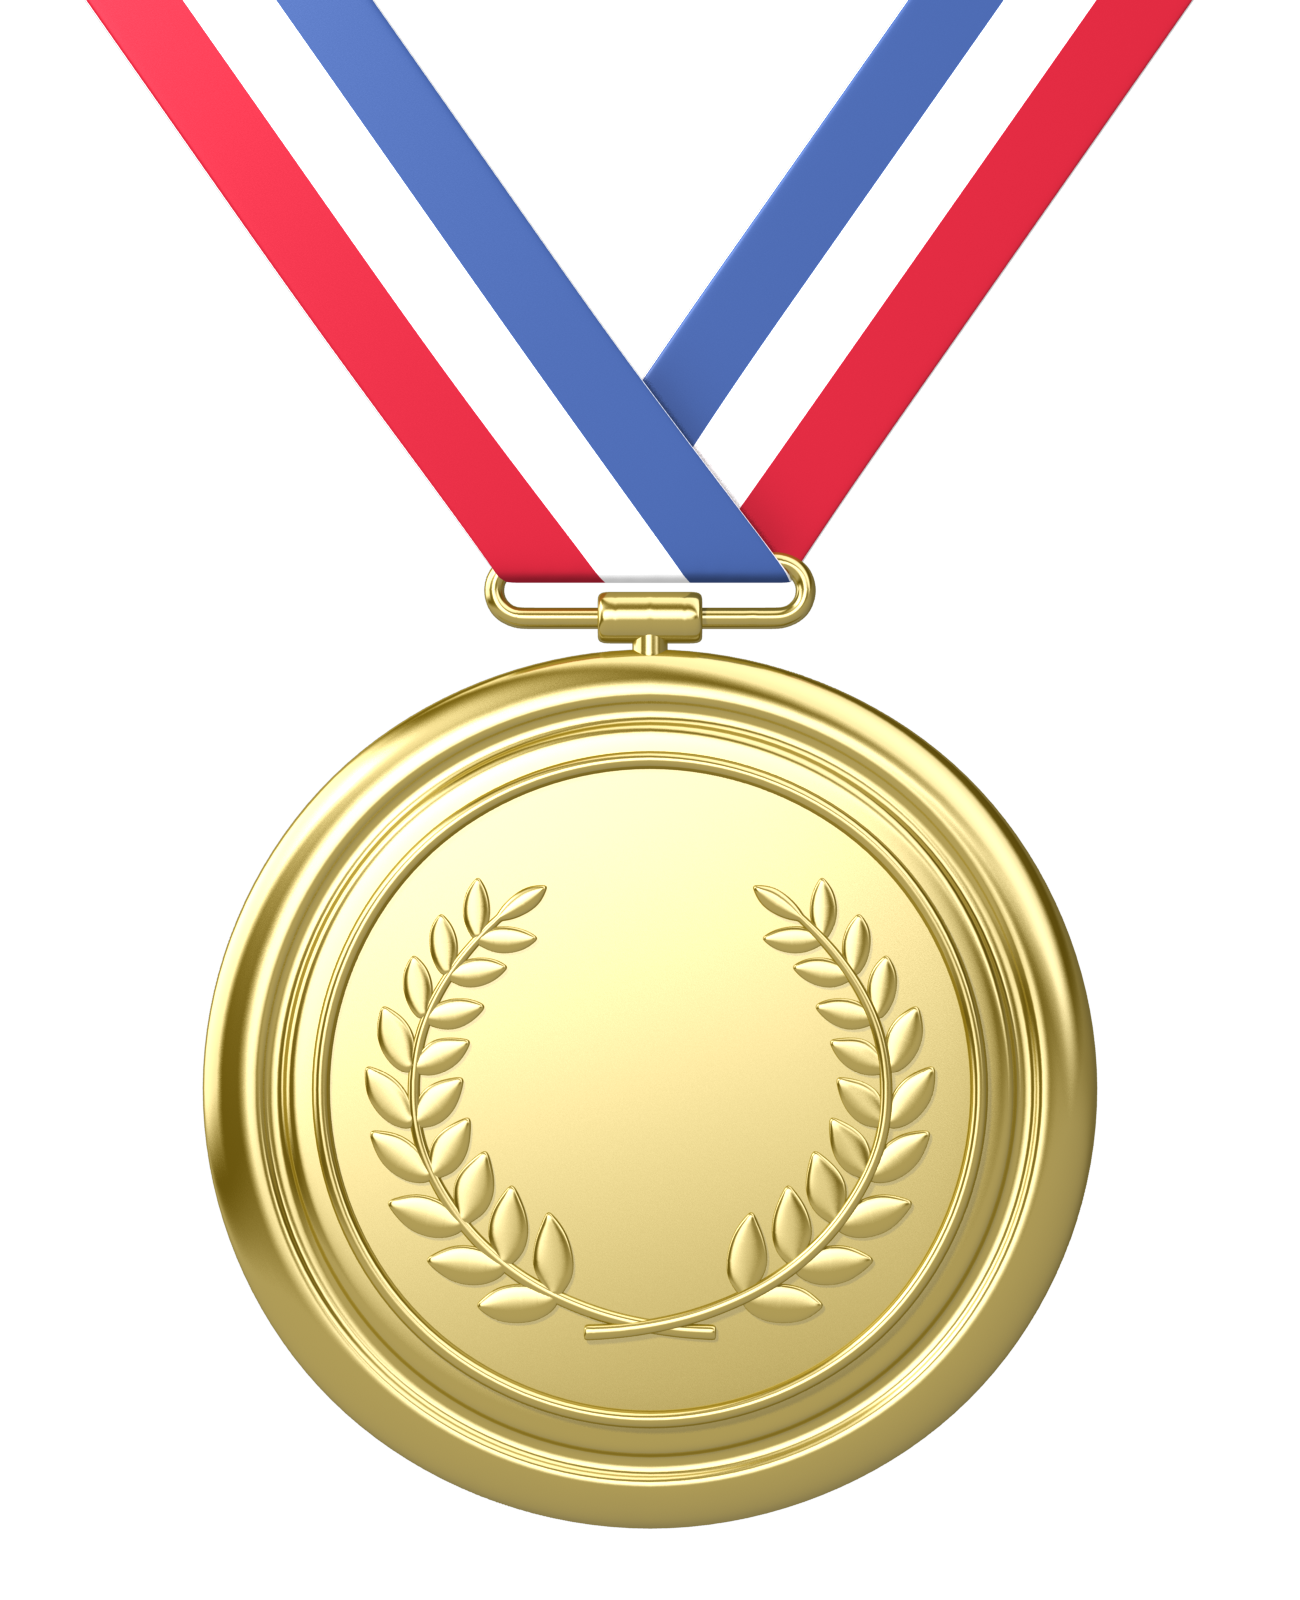 Olympic gold medal png